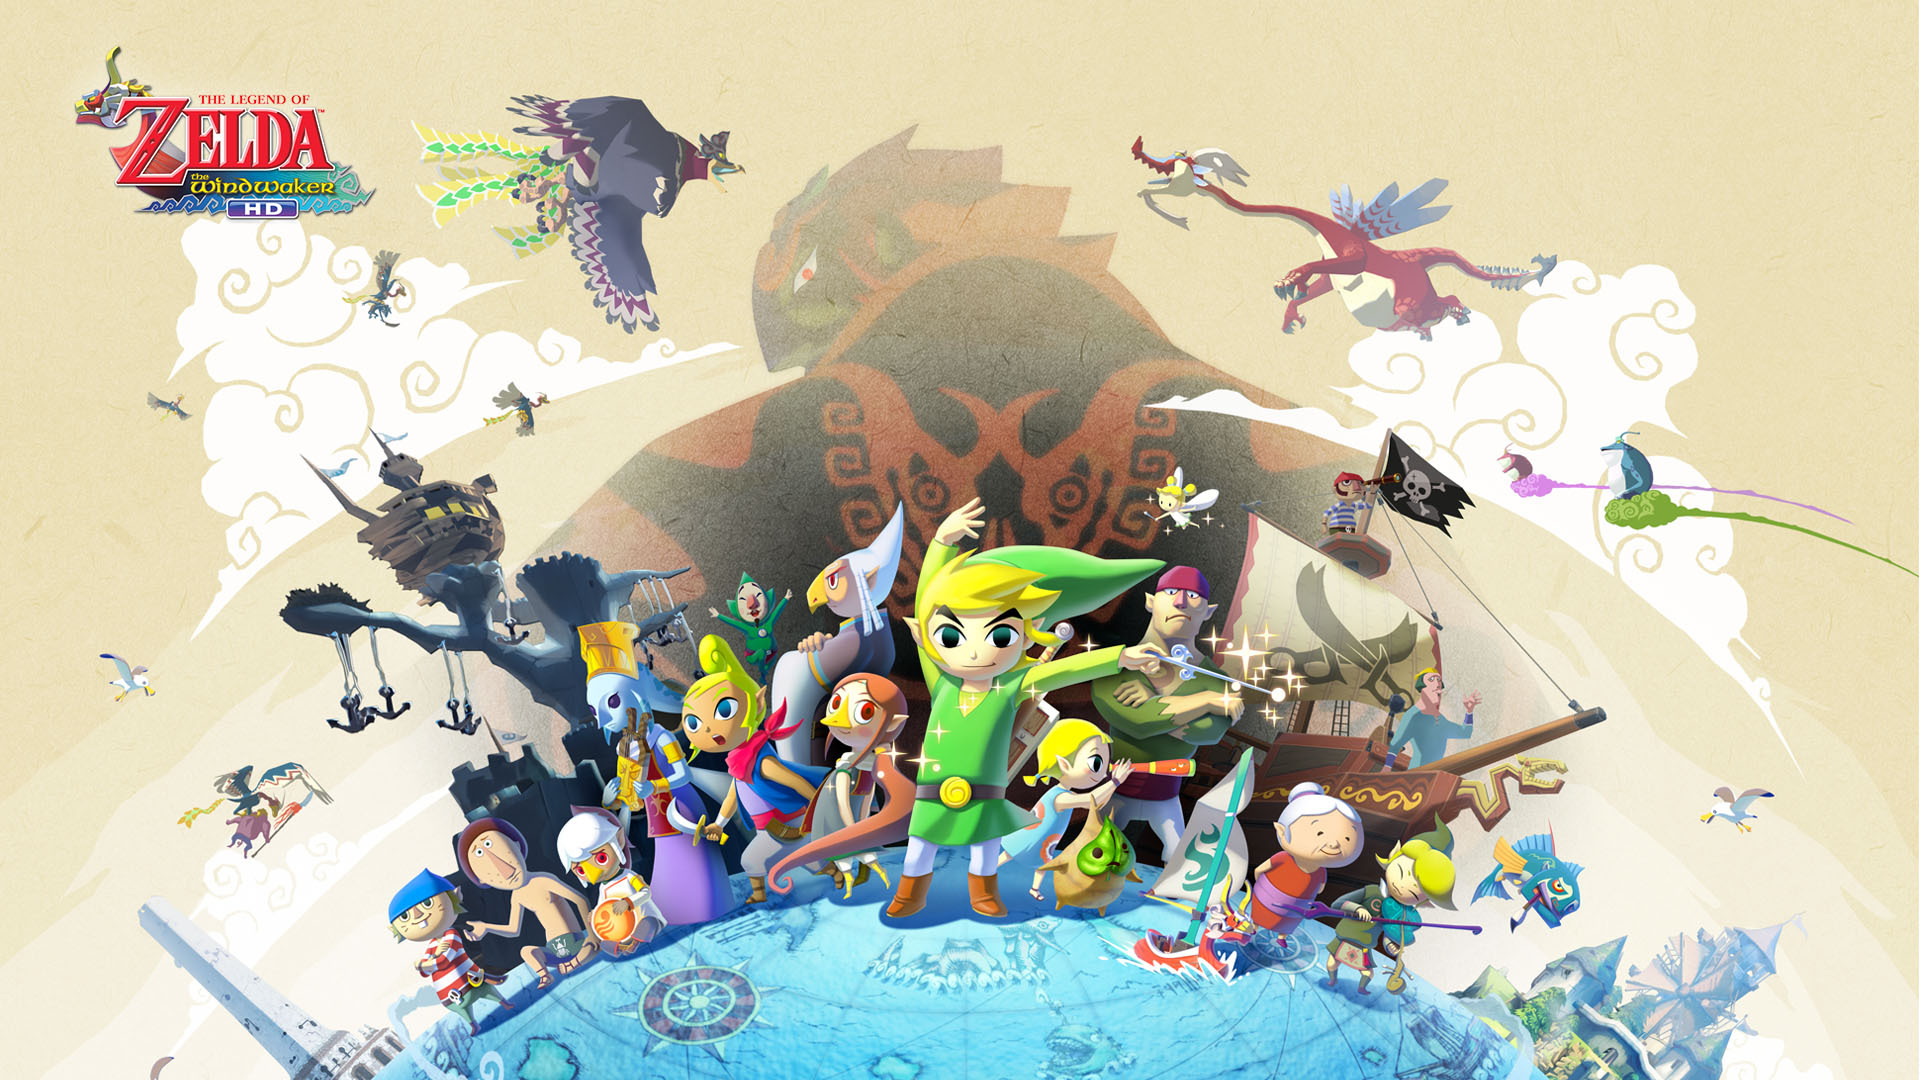 fond d'écran du jeu the legend de zelda : the wind waker hd